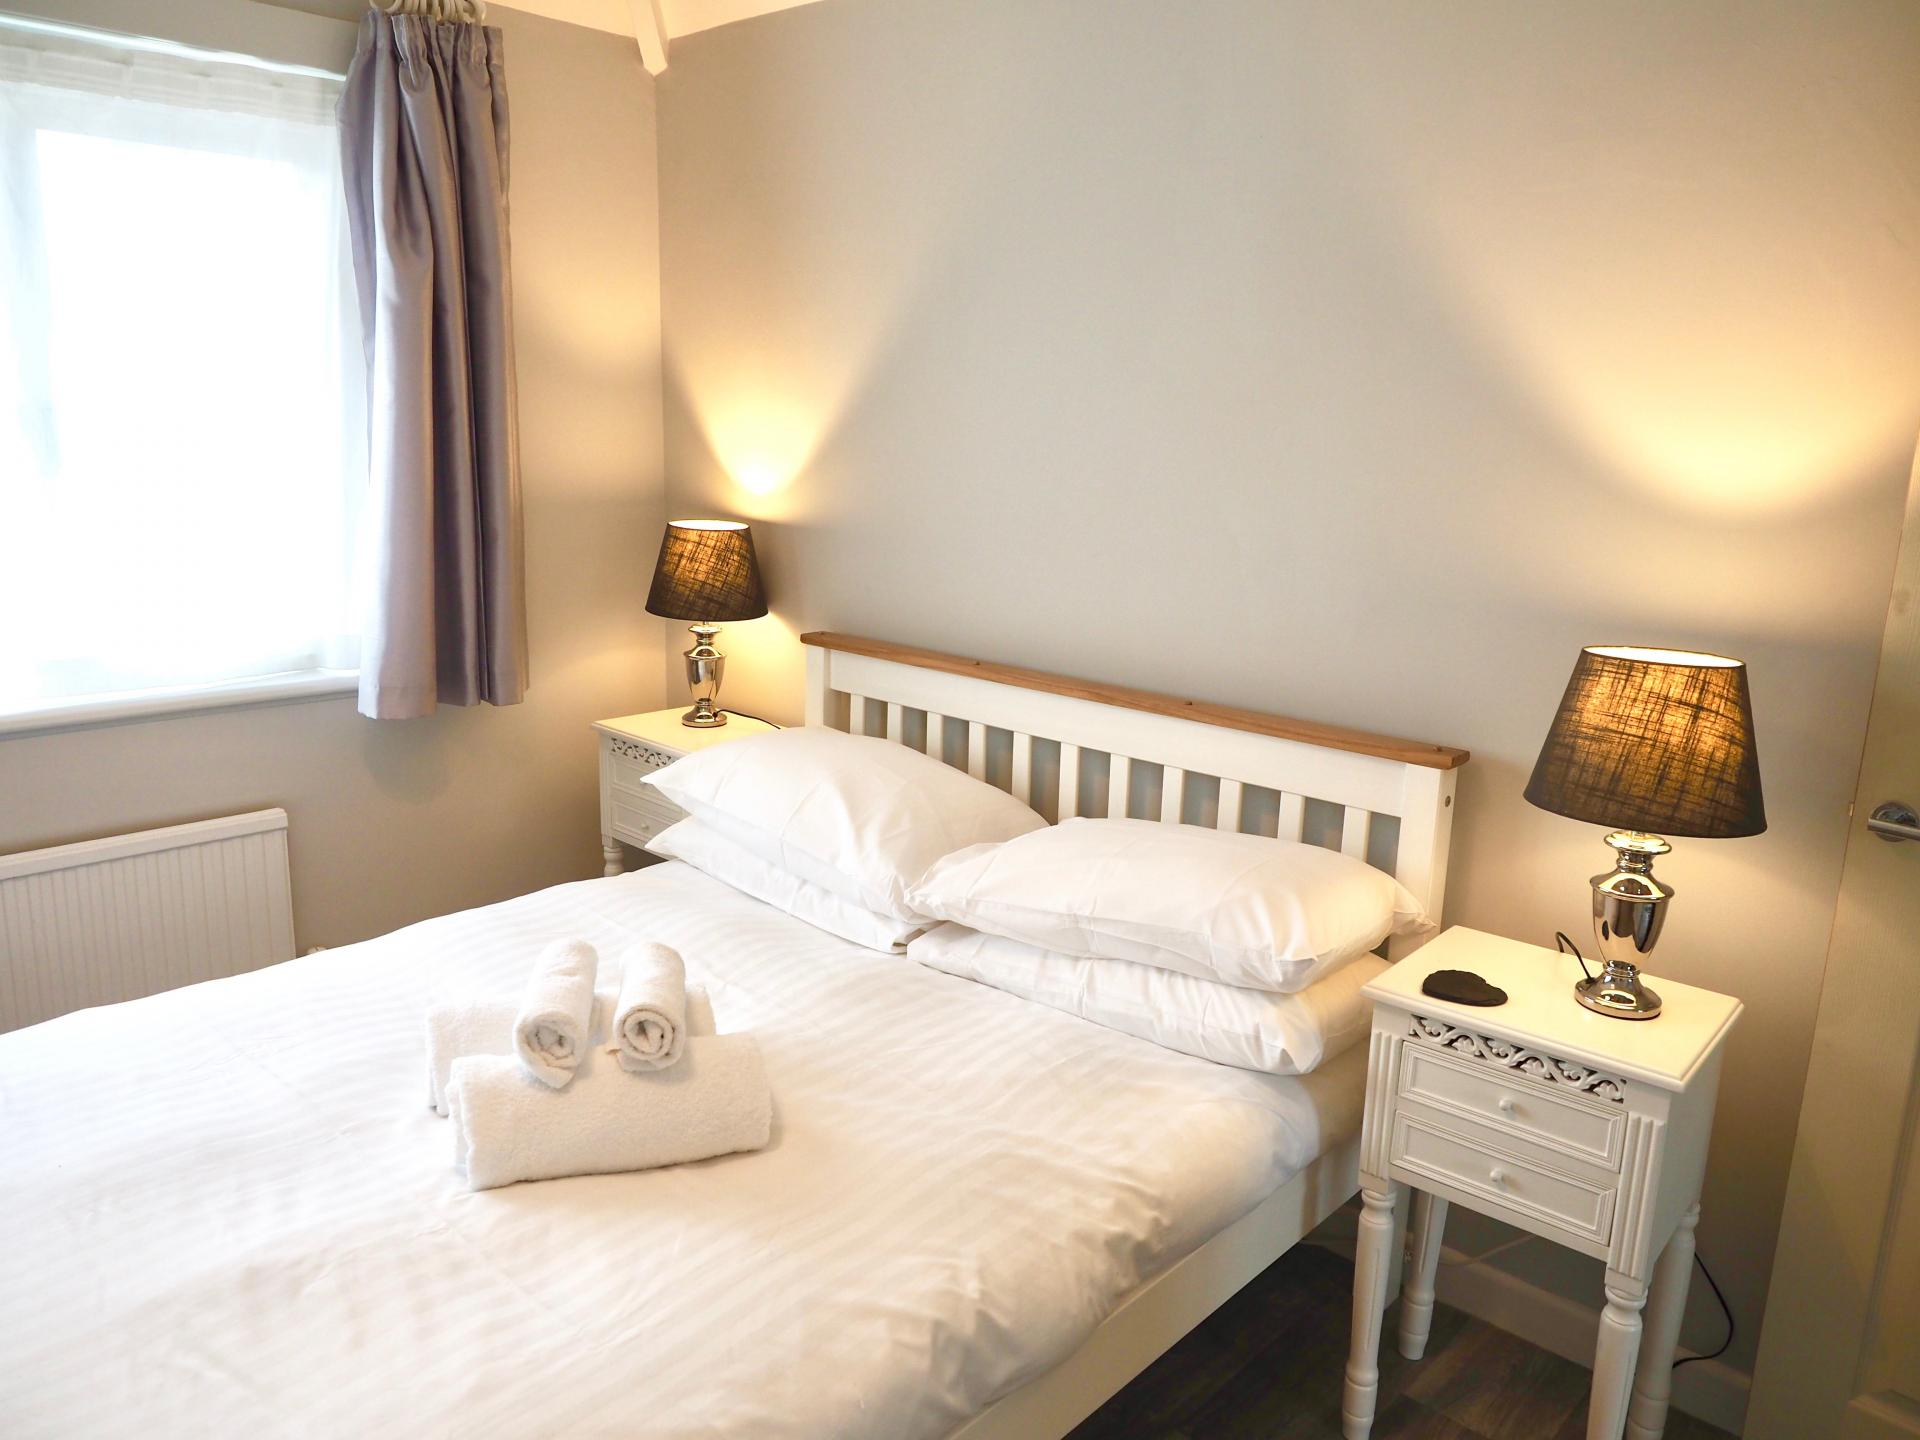 Bed at Exeter Suite Apartments, Headington, Oxford - Citybase Apartments